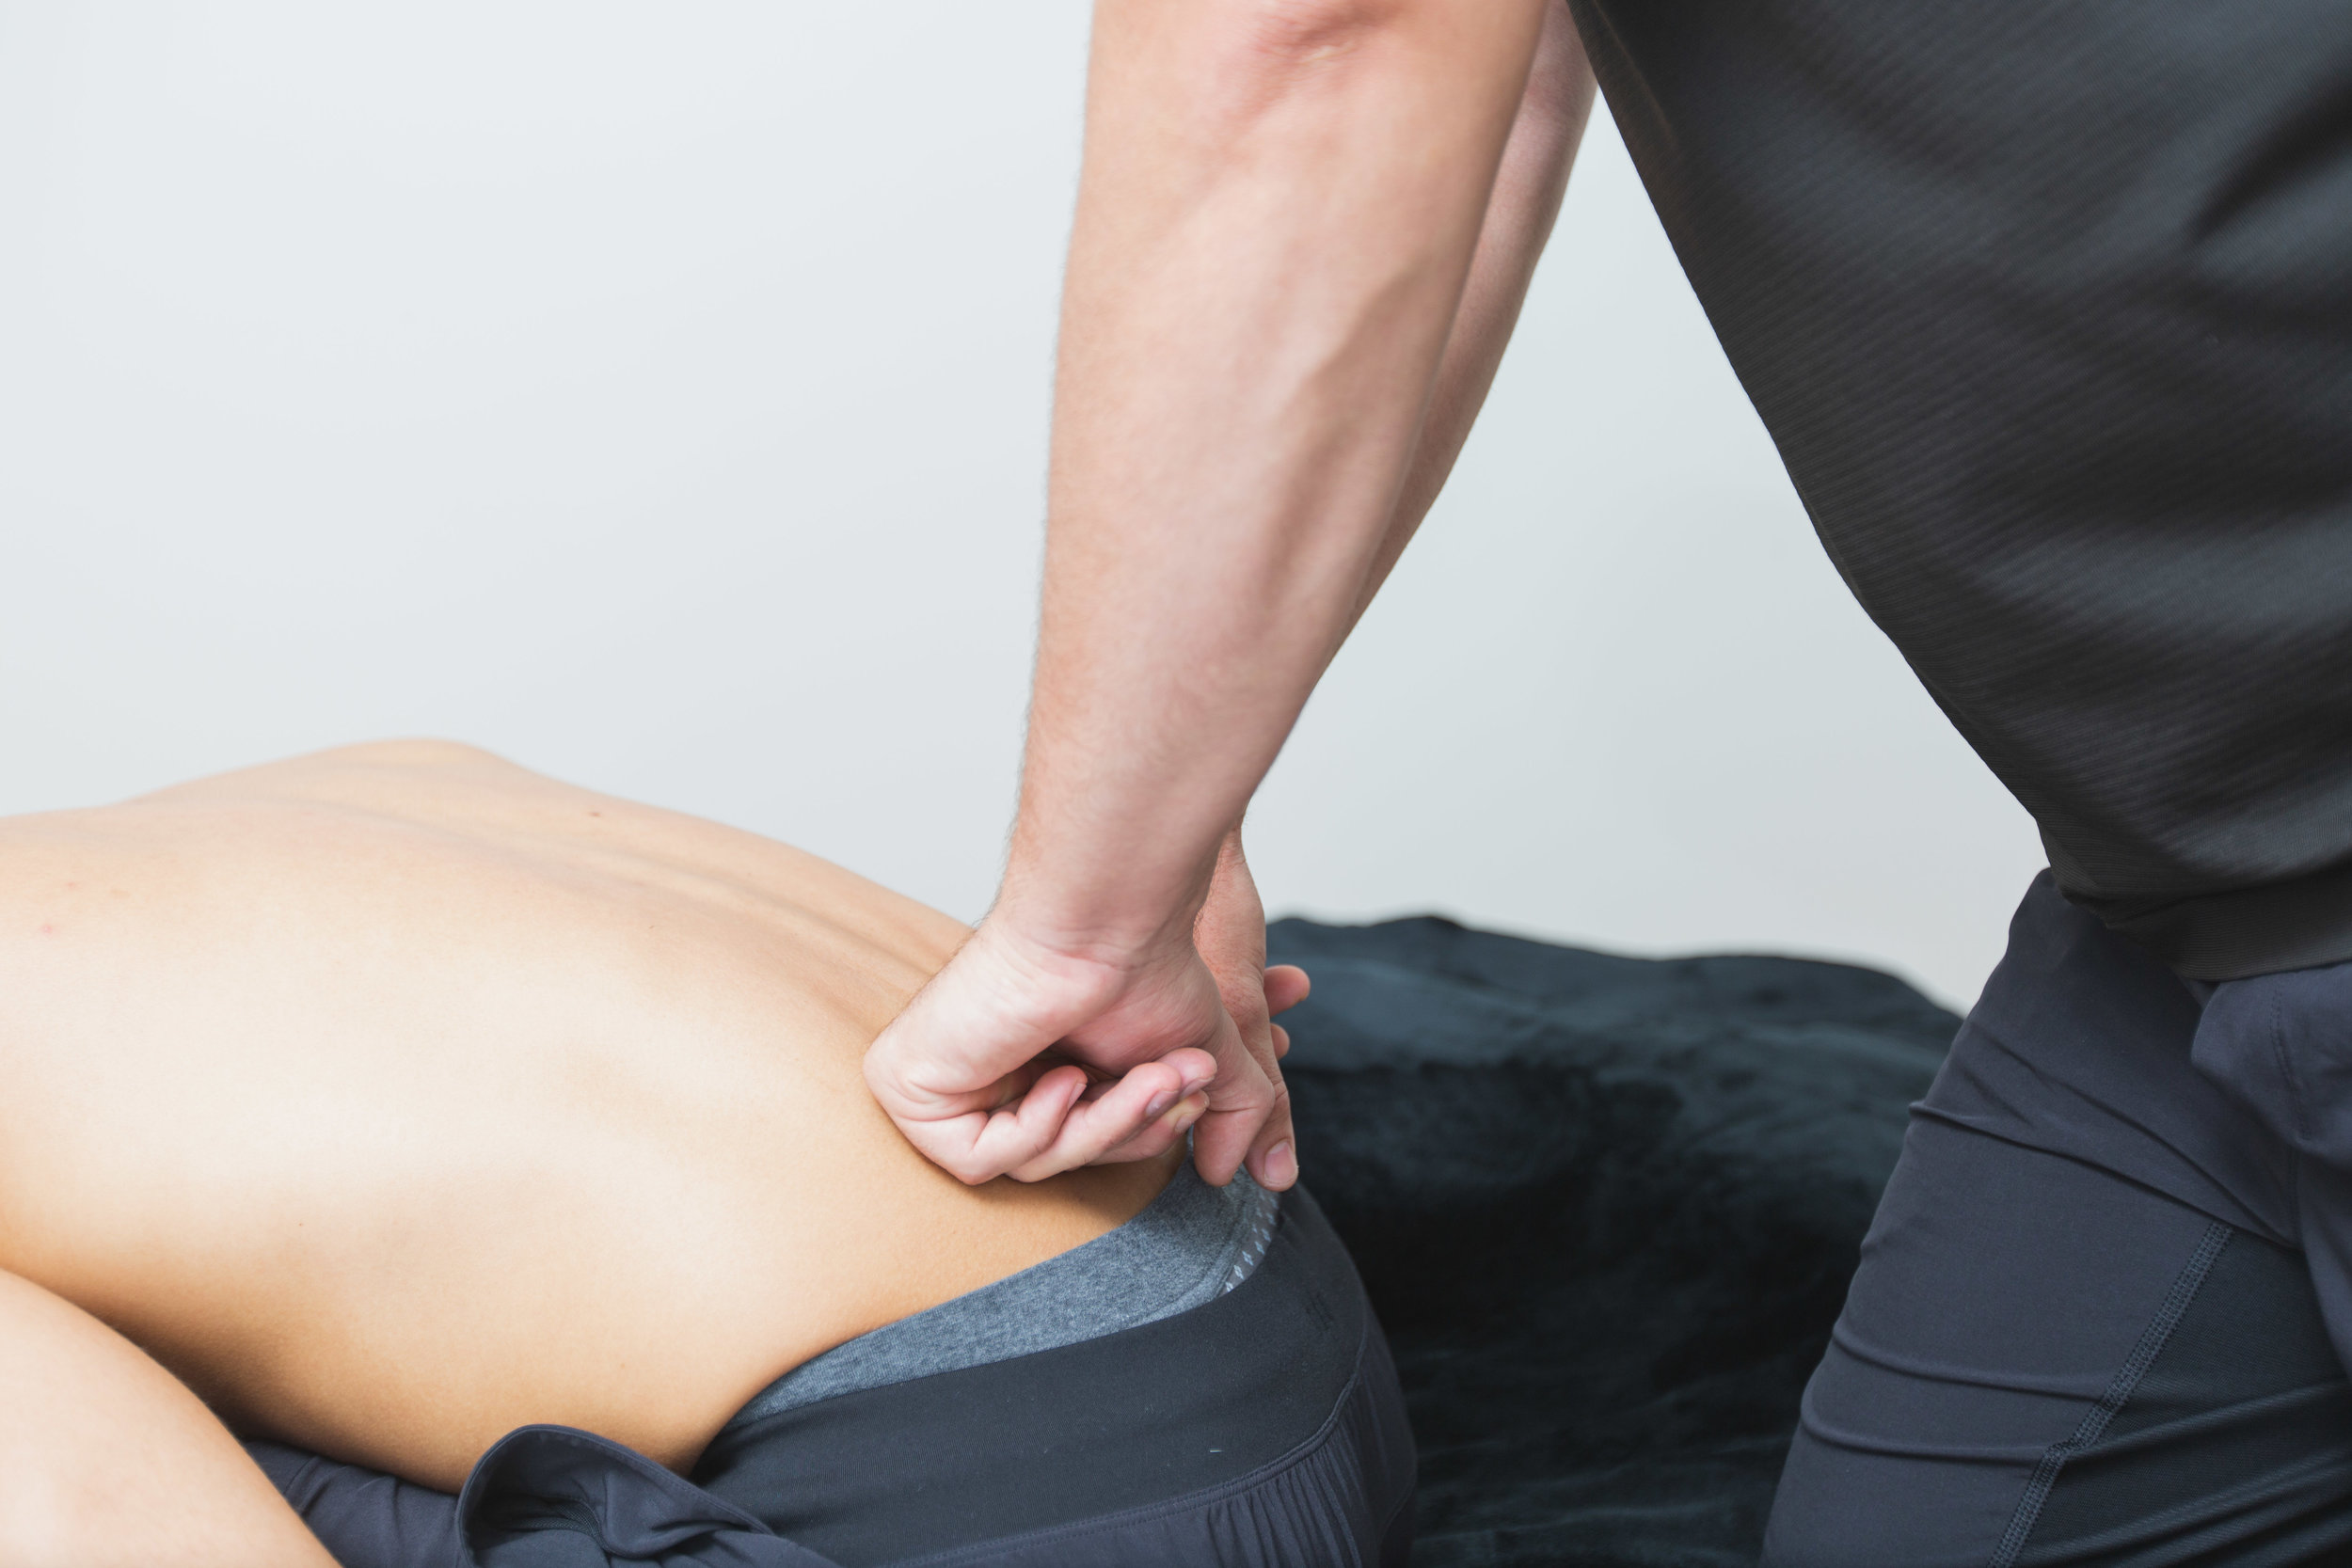 """One of my favourite methods of releasing this structure is """"back stripes."""" To perform this technique, get the patient sitting on the edge of a table. Using either your elbows or knuckles, slowly but firmly run them down either side of their spine, from their upper to lower back"""